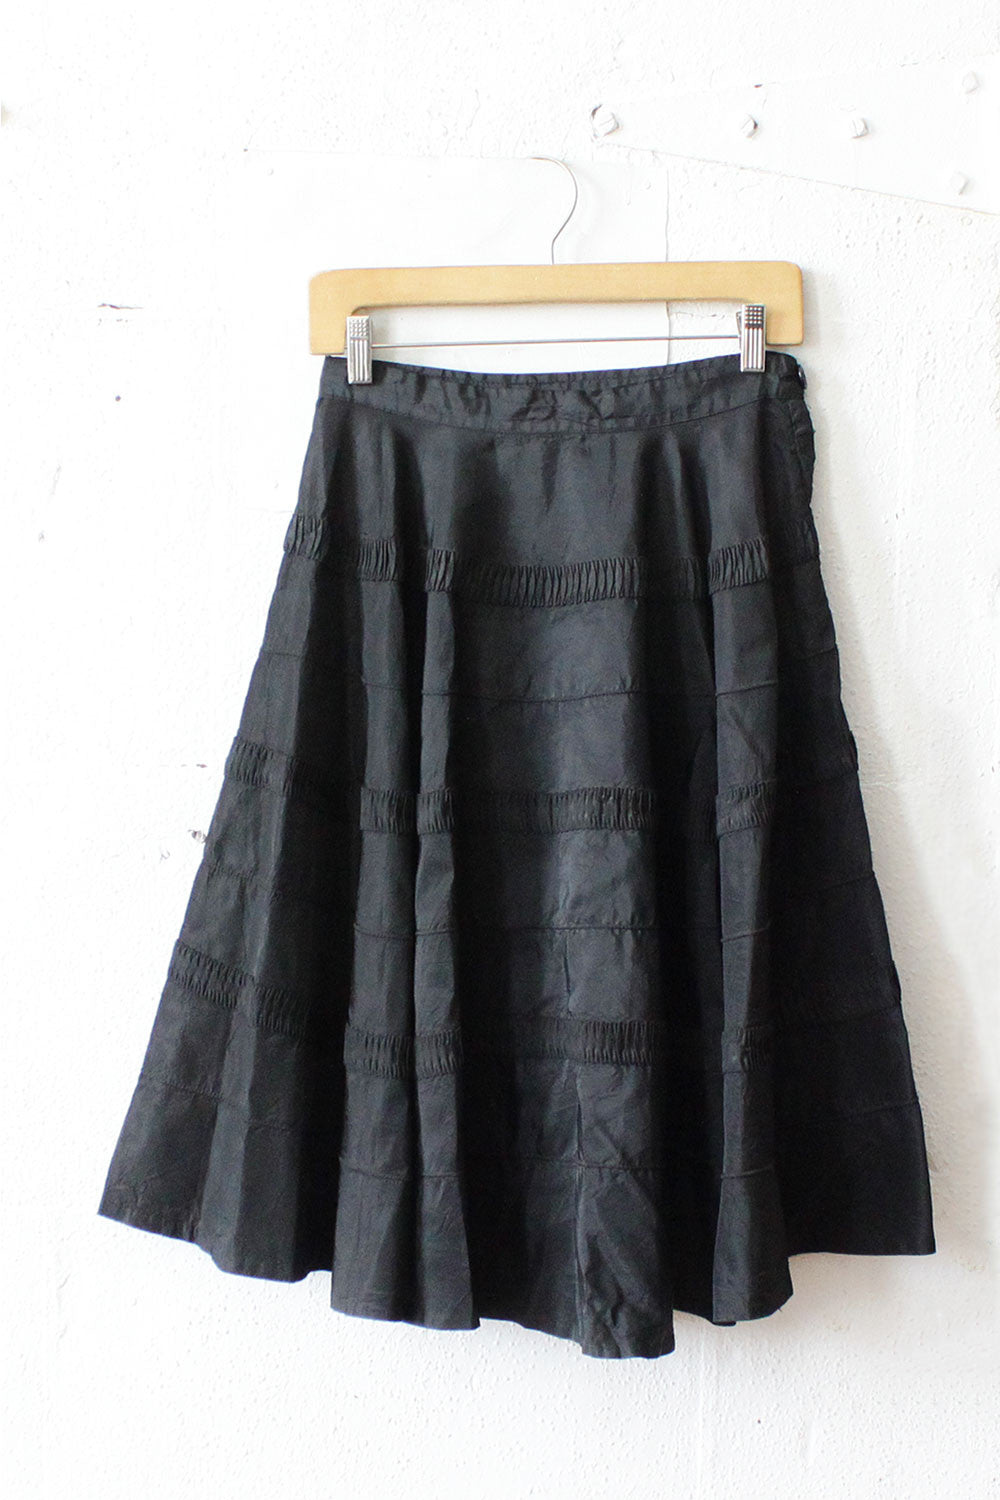 Ribboned Black Circle Skirt S/M